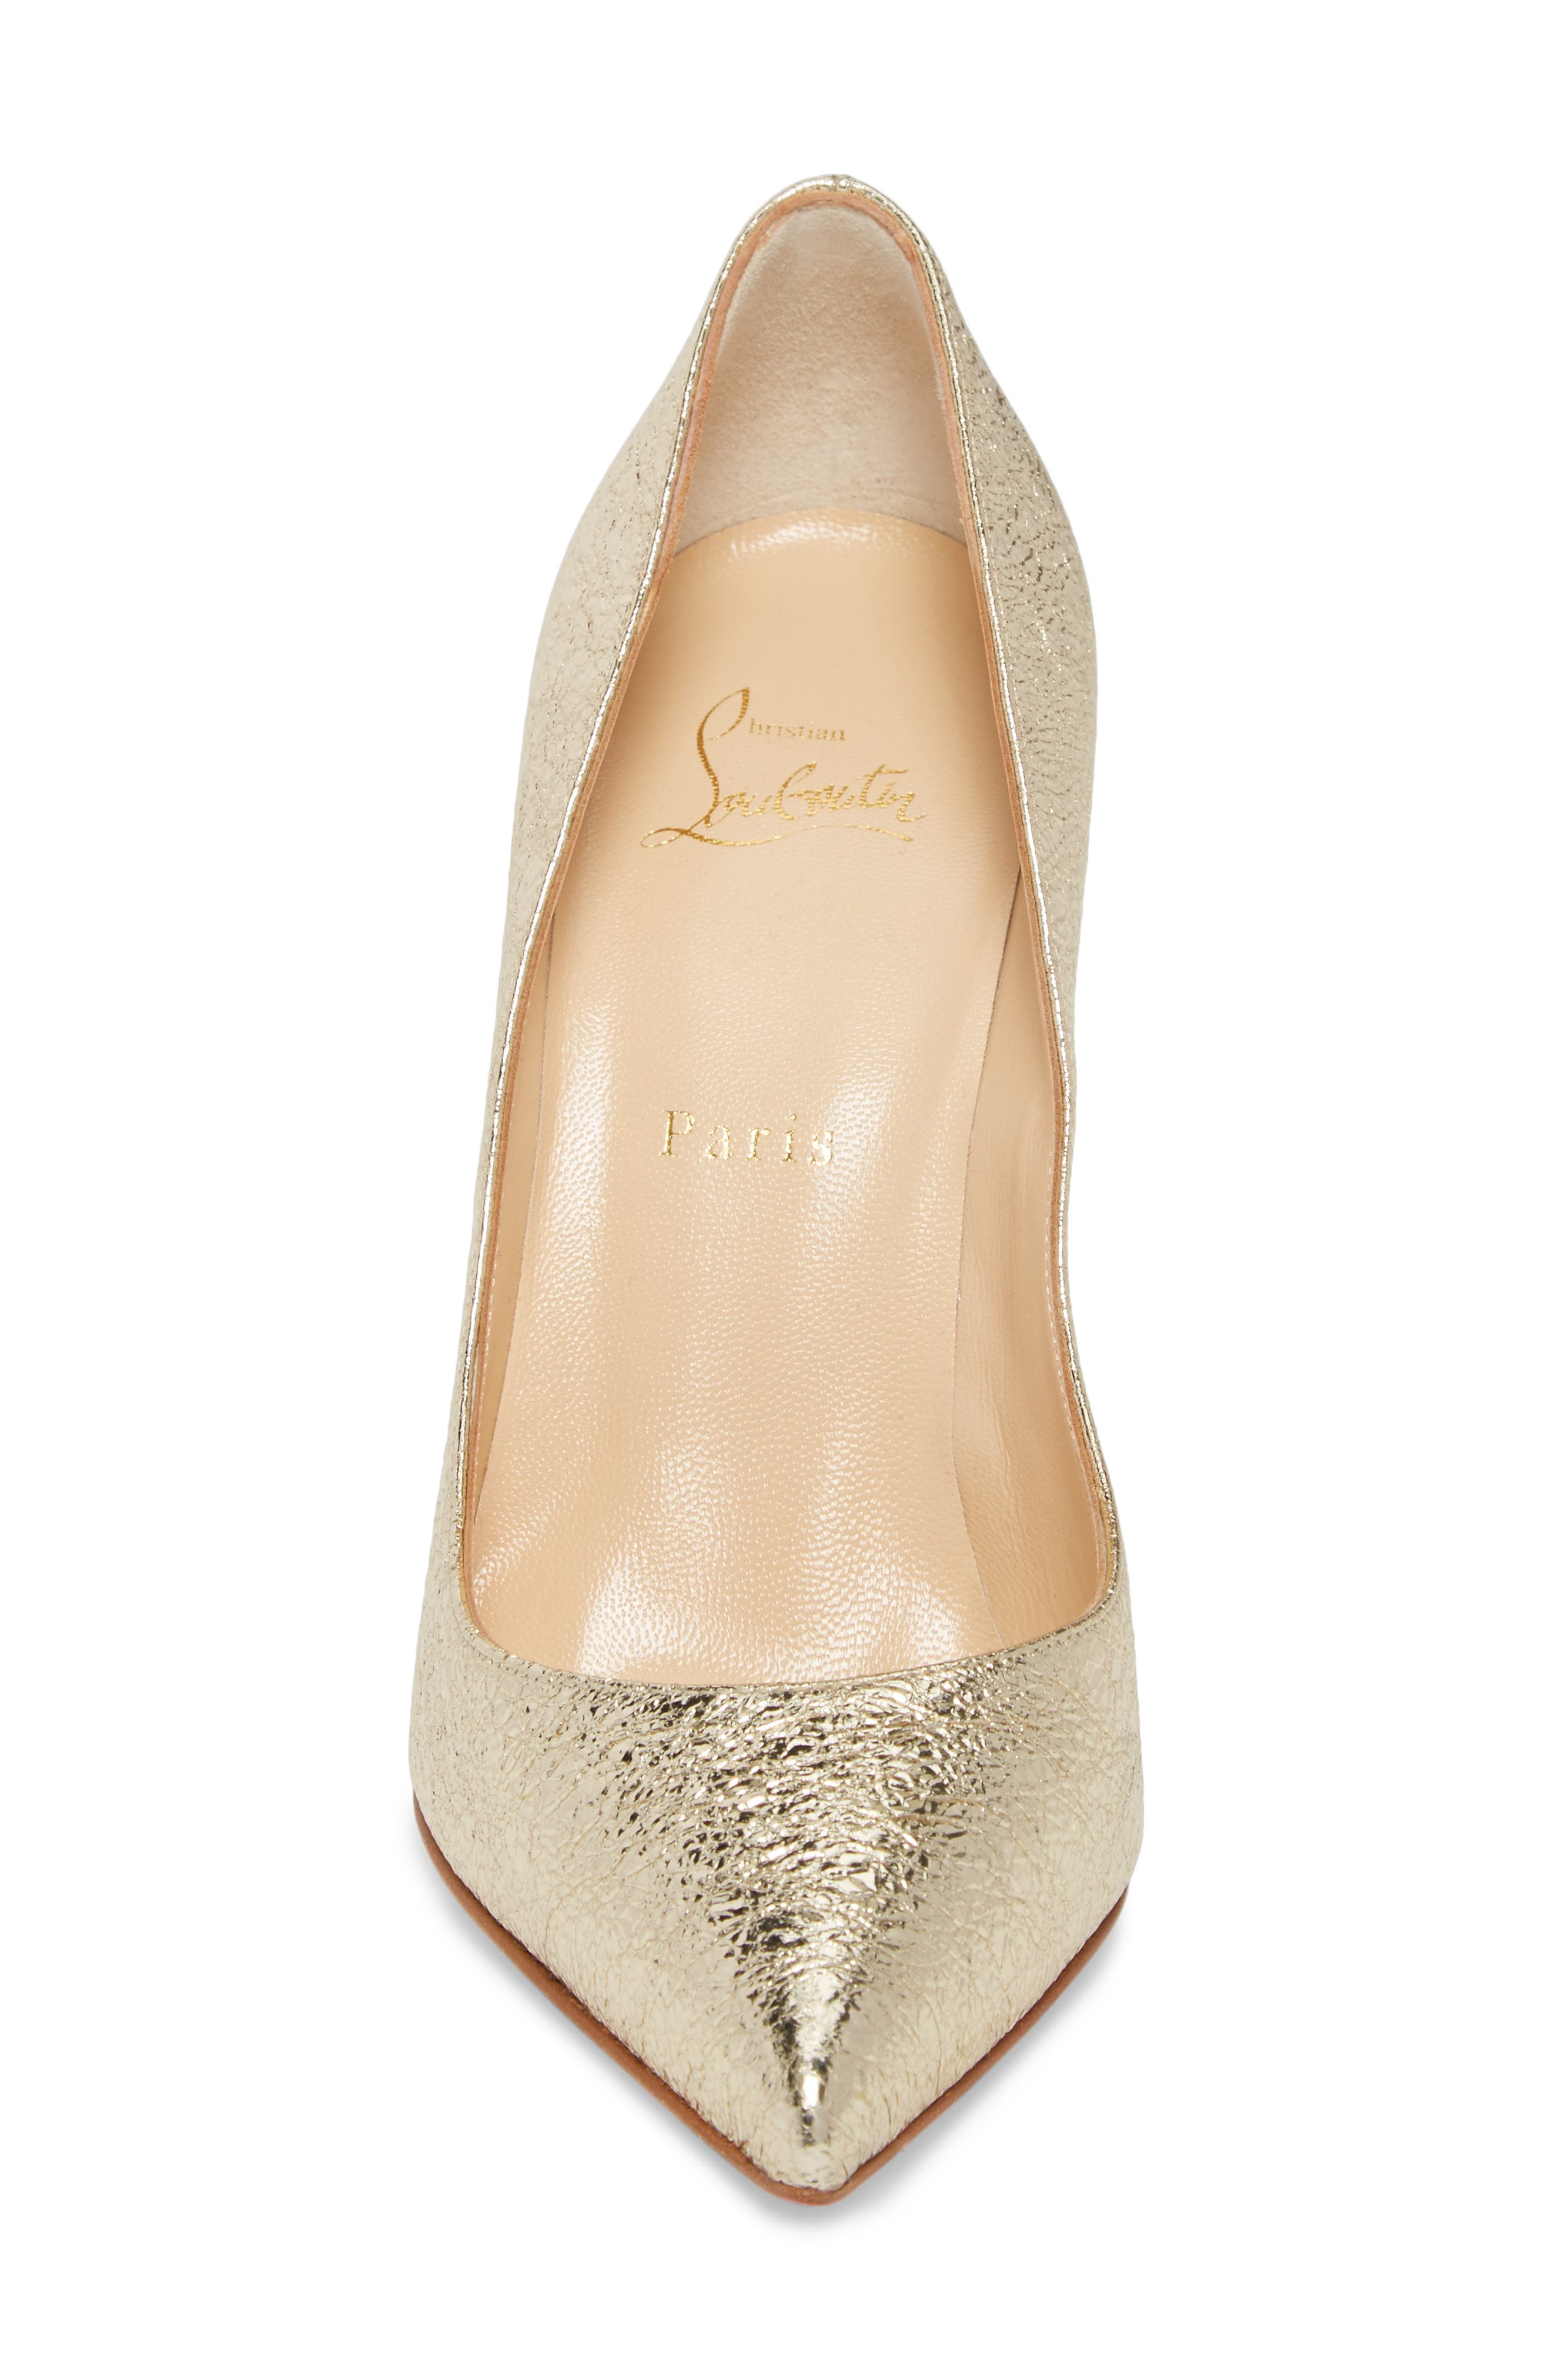 Pigalle Follies Pointy Toe Pump,                             Alternate thumbnail 4, color,                             Platine